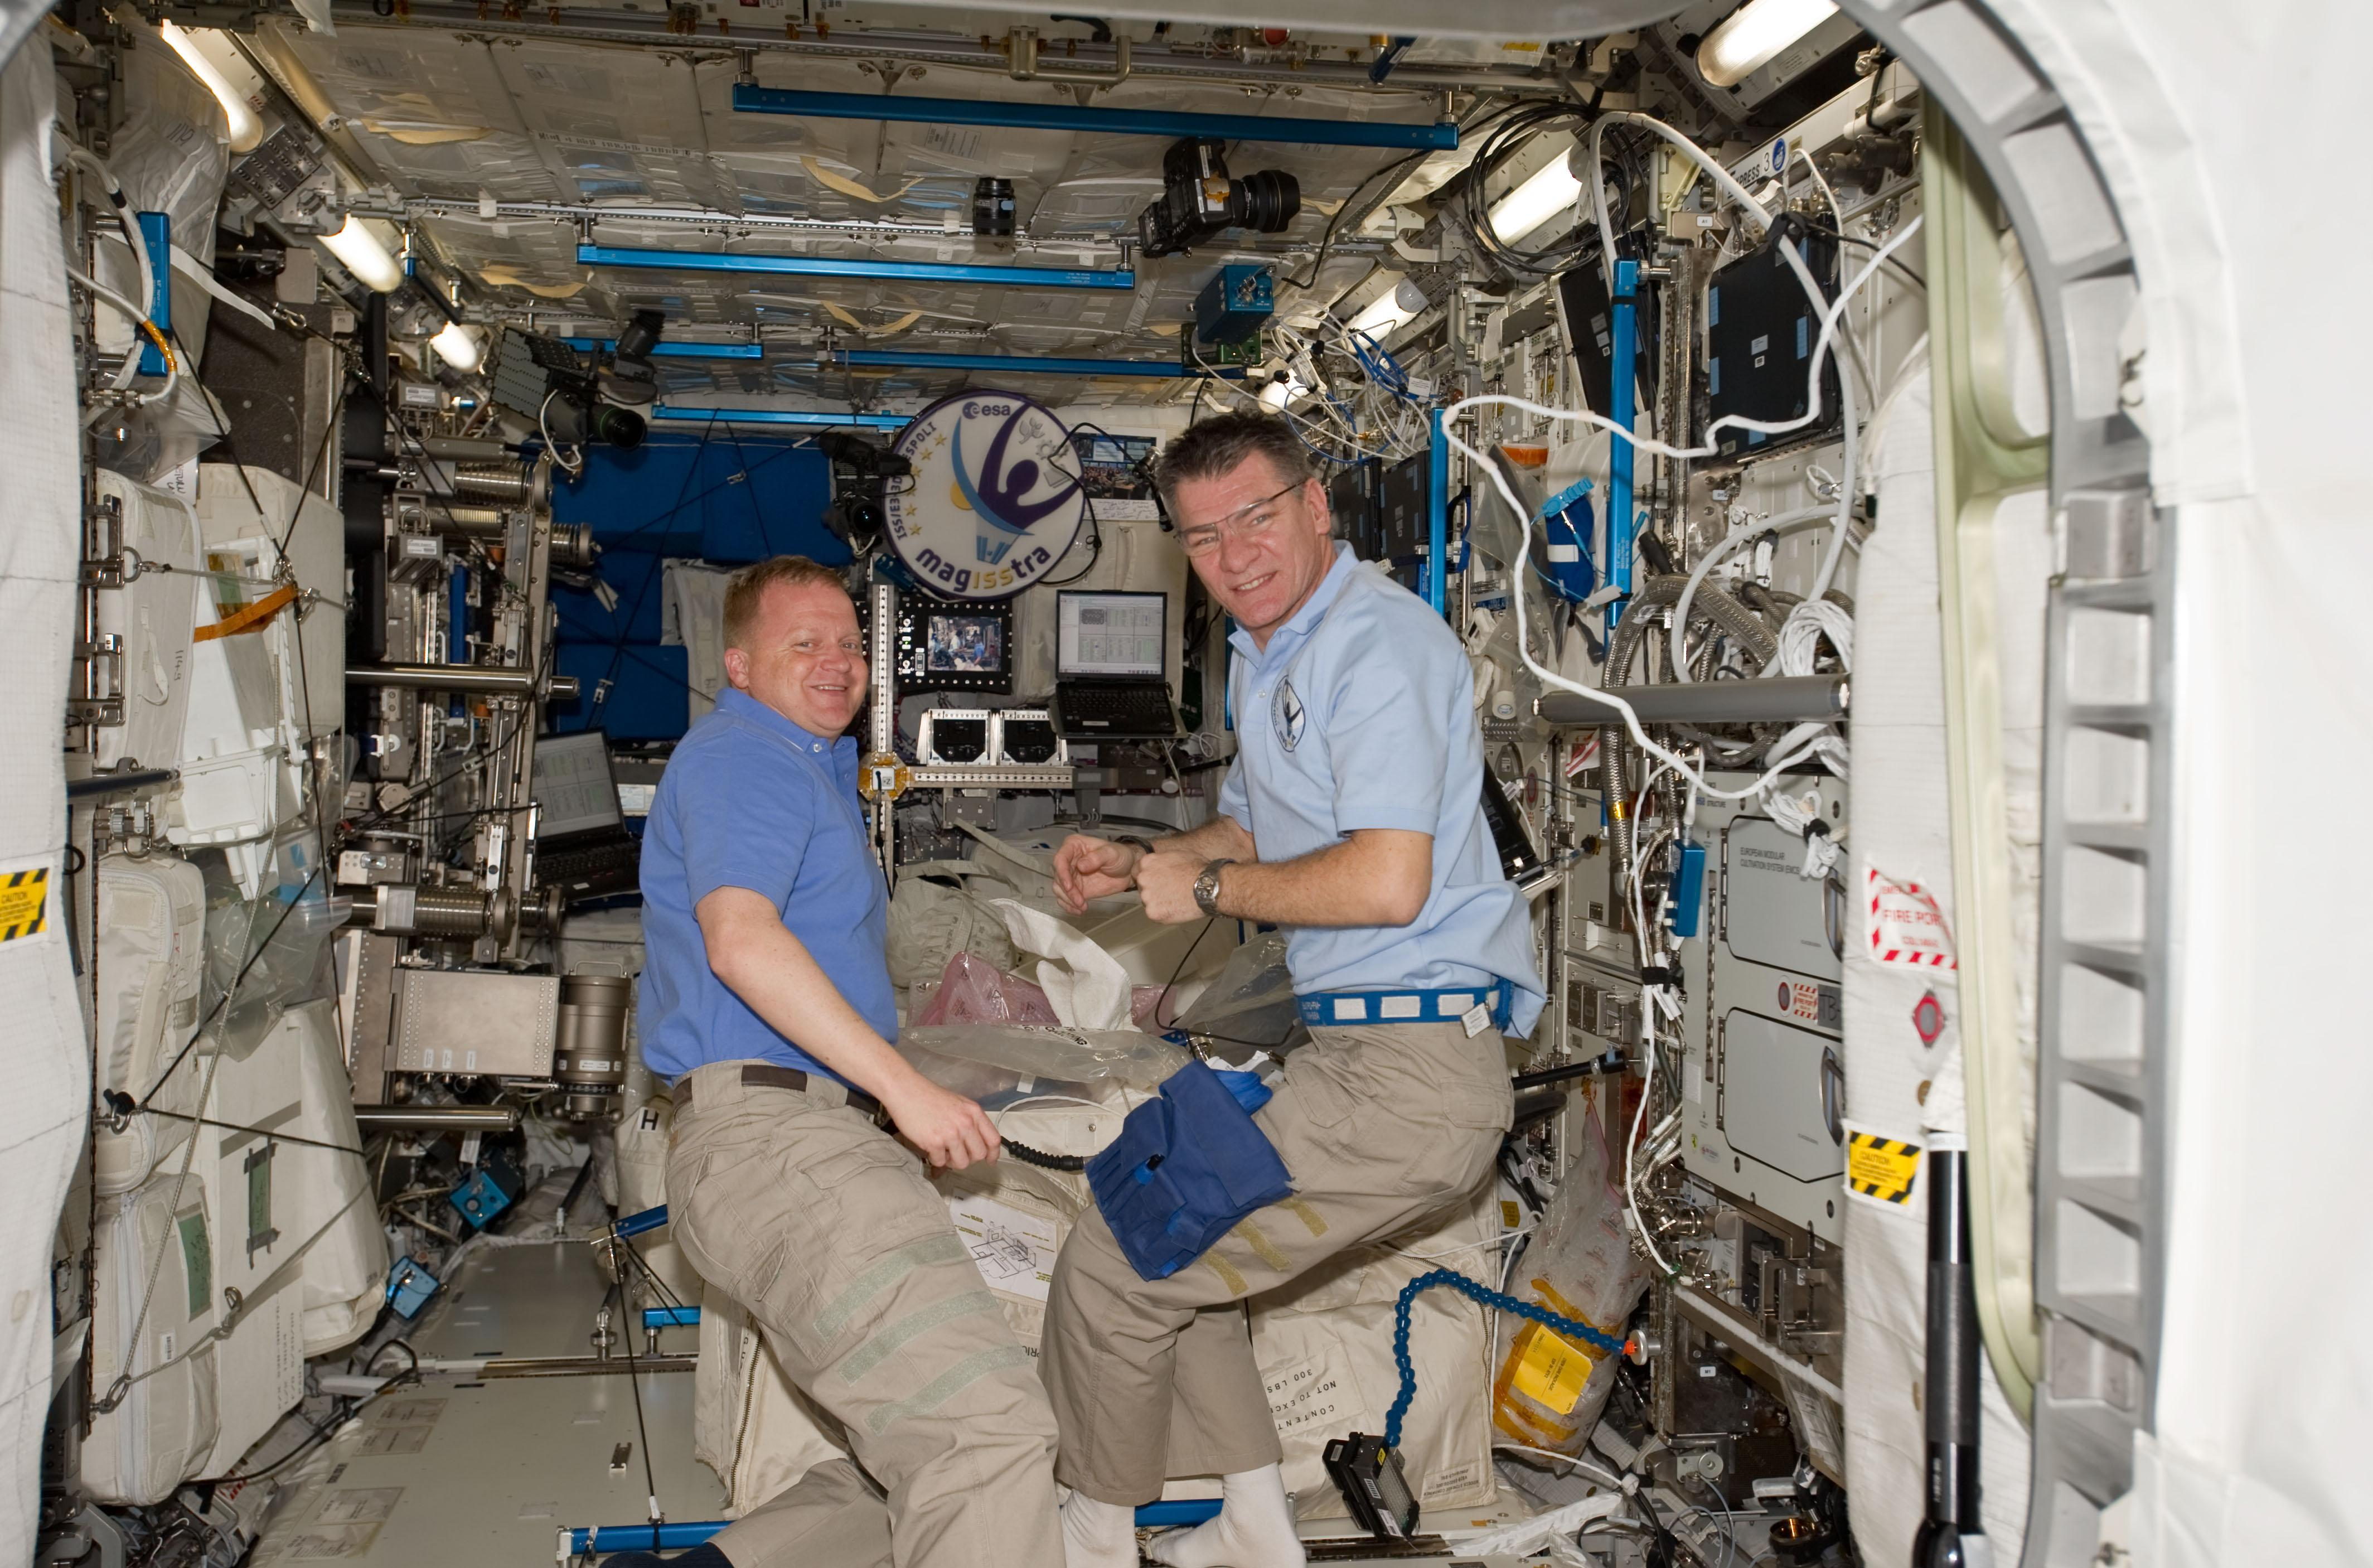 inside space station images - photo #6